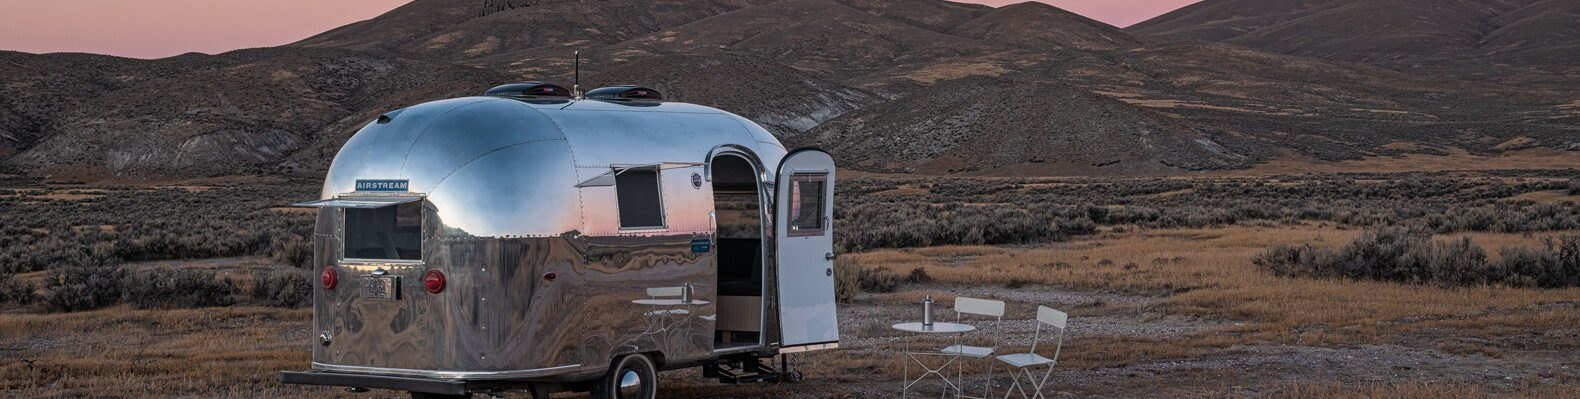 silver airstream trailer with door open at sunset